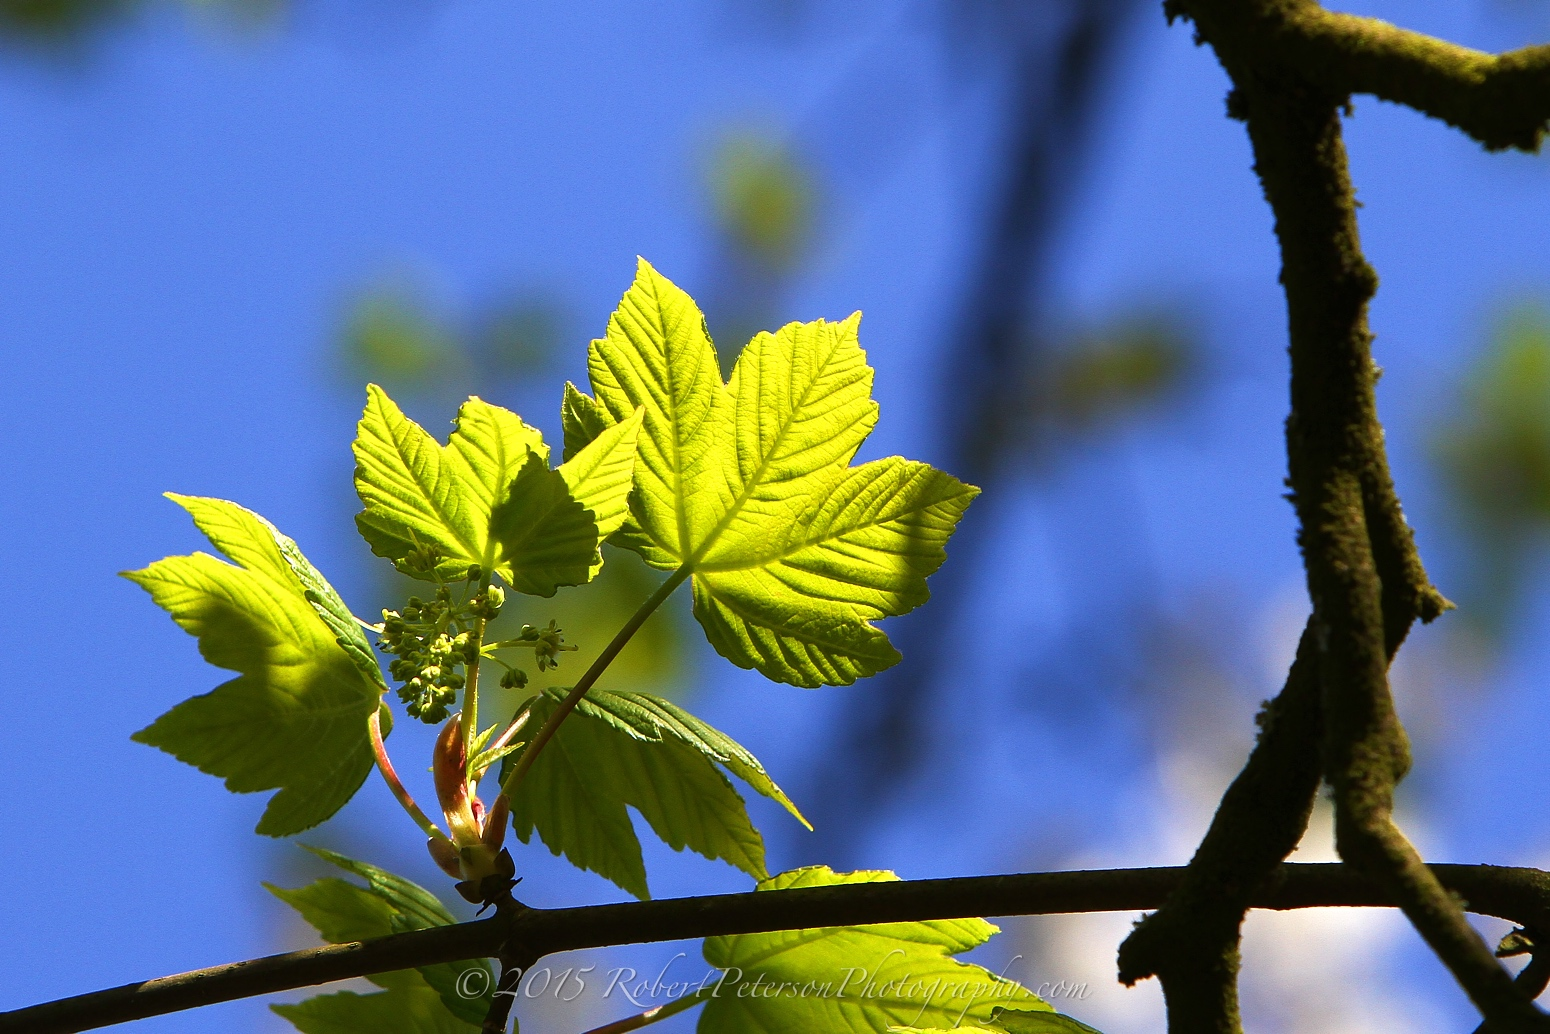 2015-04-21 Green Leaves Robert Peterson Photography-63 1550pxRPP